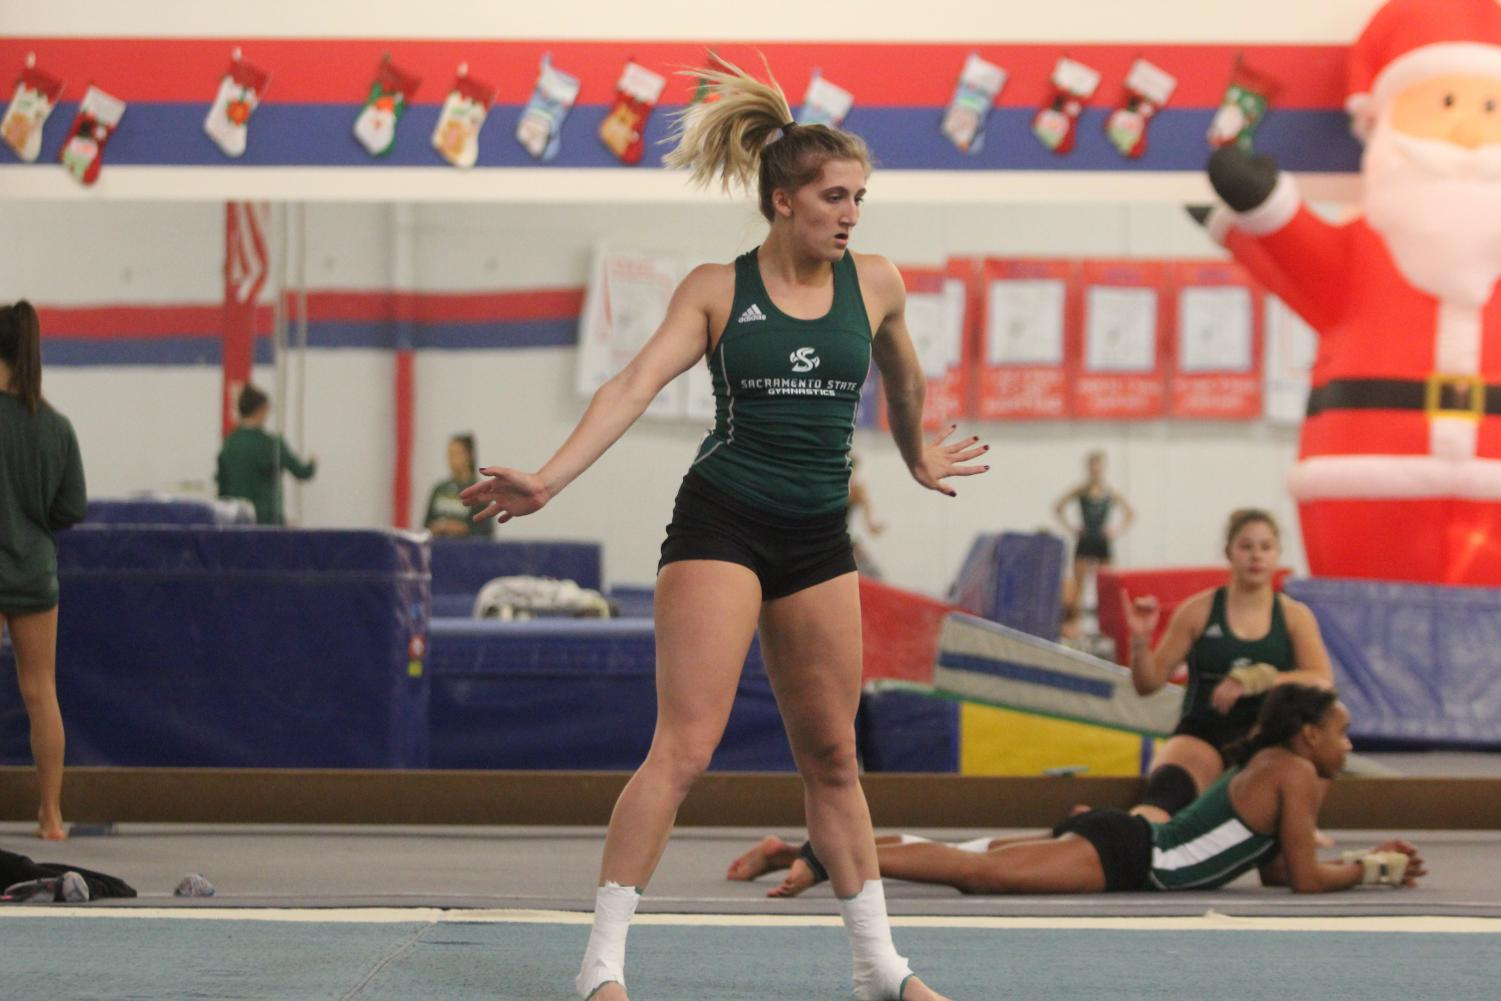 Sacramento State senior gymnast Caitlin Soliwoda works on her floor routine Nov. 27 at Byers Gymnastics Center in Elk Grove. Soliwoda will be one of the 18 returners from last year's 24 routines for the Hornets.